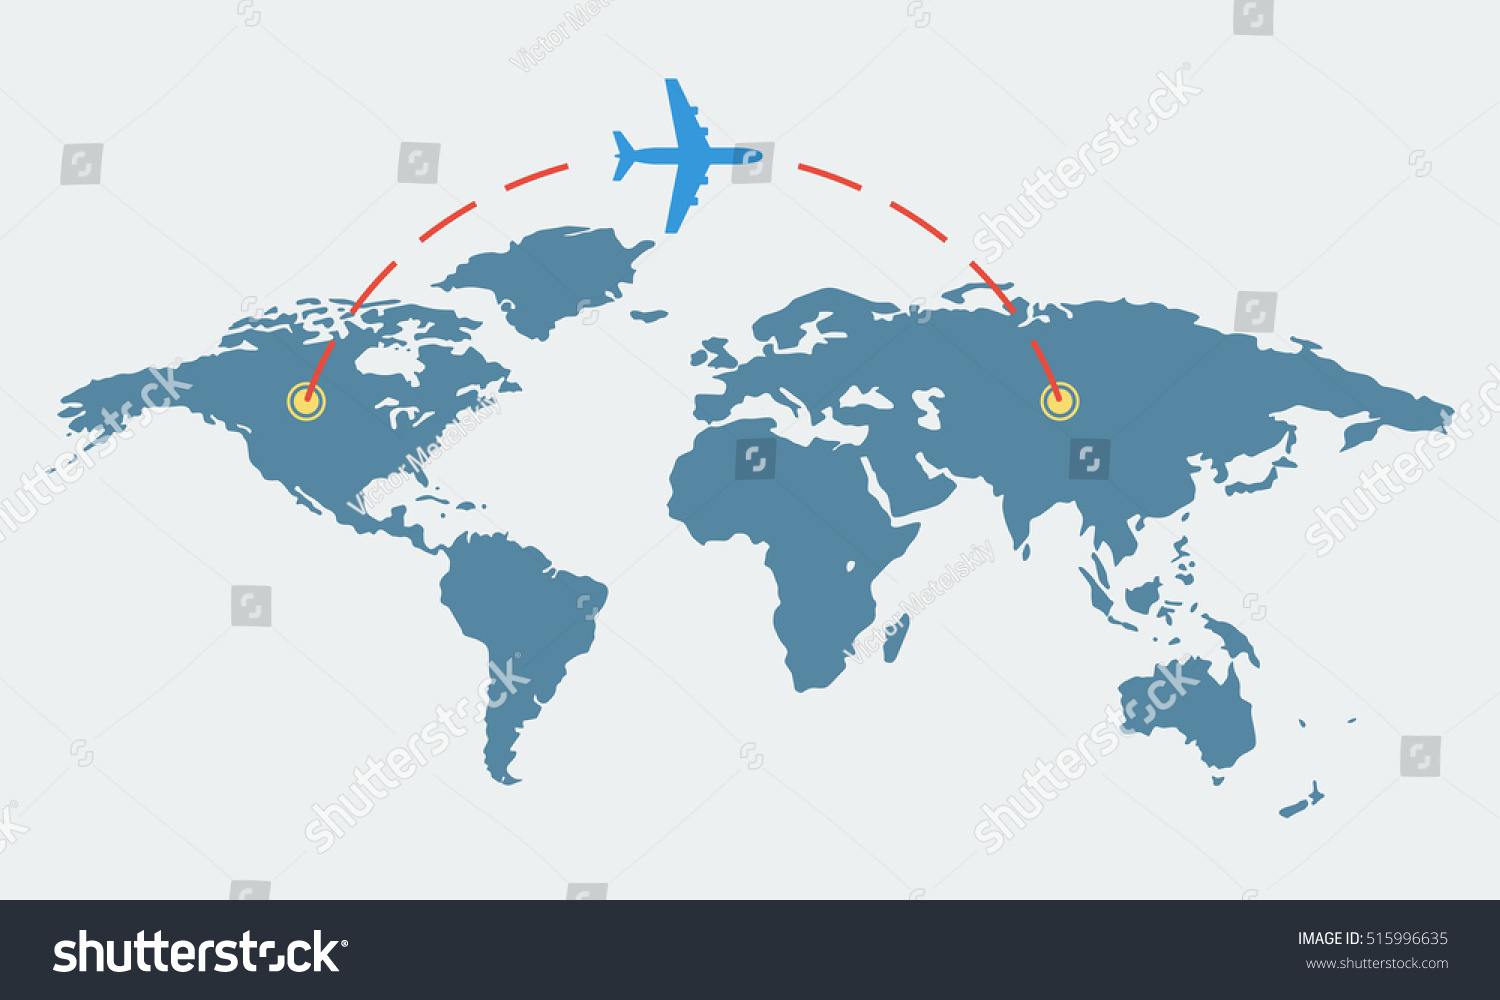 World map plane travel tourism concept stock vector 515996635 world map with plane travel and tourism concept airplane route vector illustration gumiabroncs Choice Image